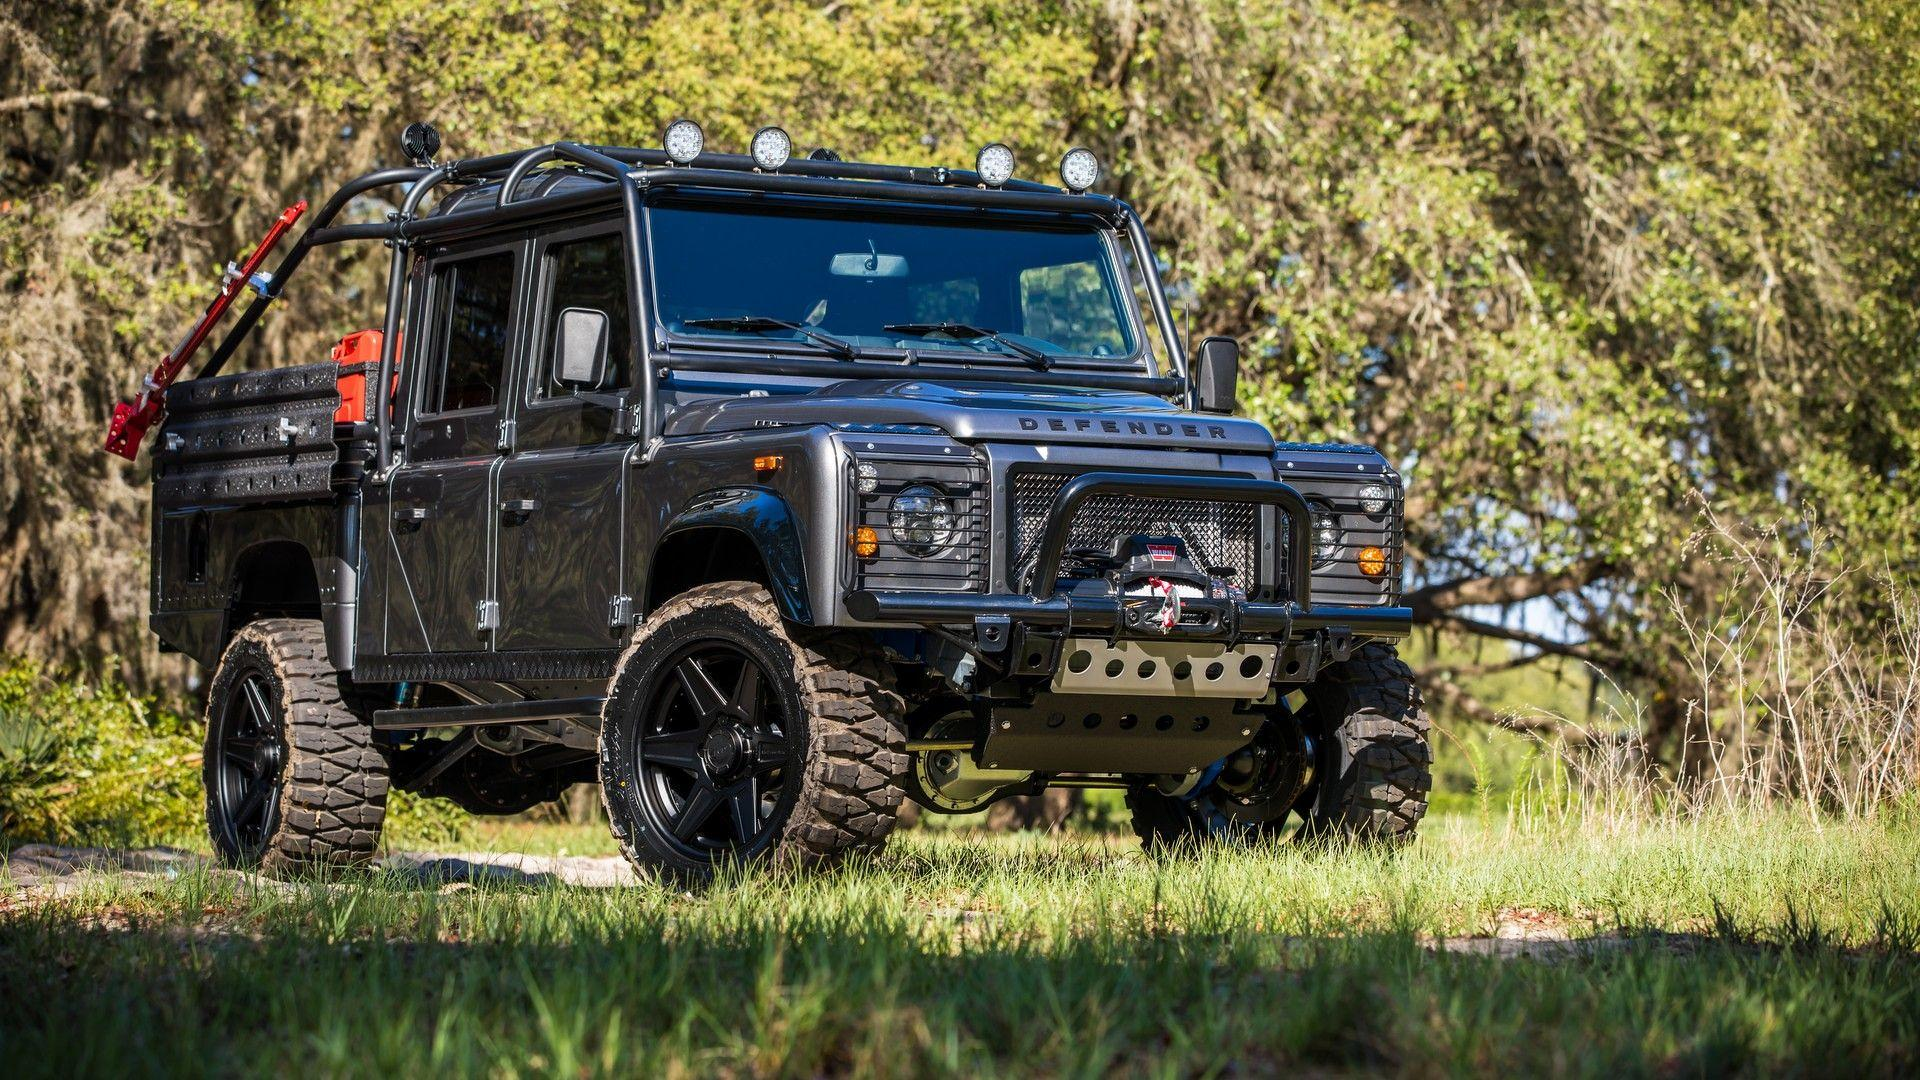 2019 Land Rover Defender Confirmed ing with Five Body Styles